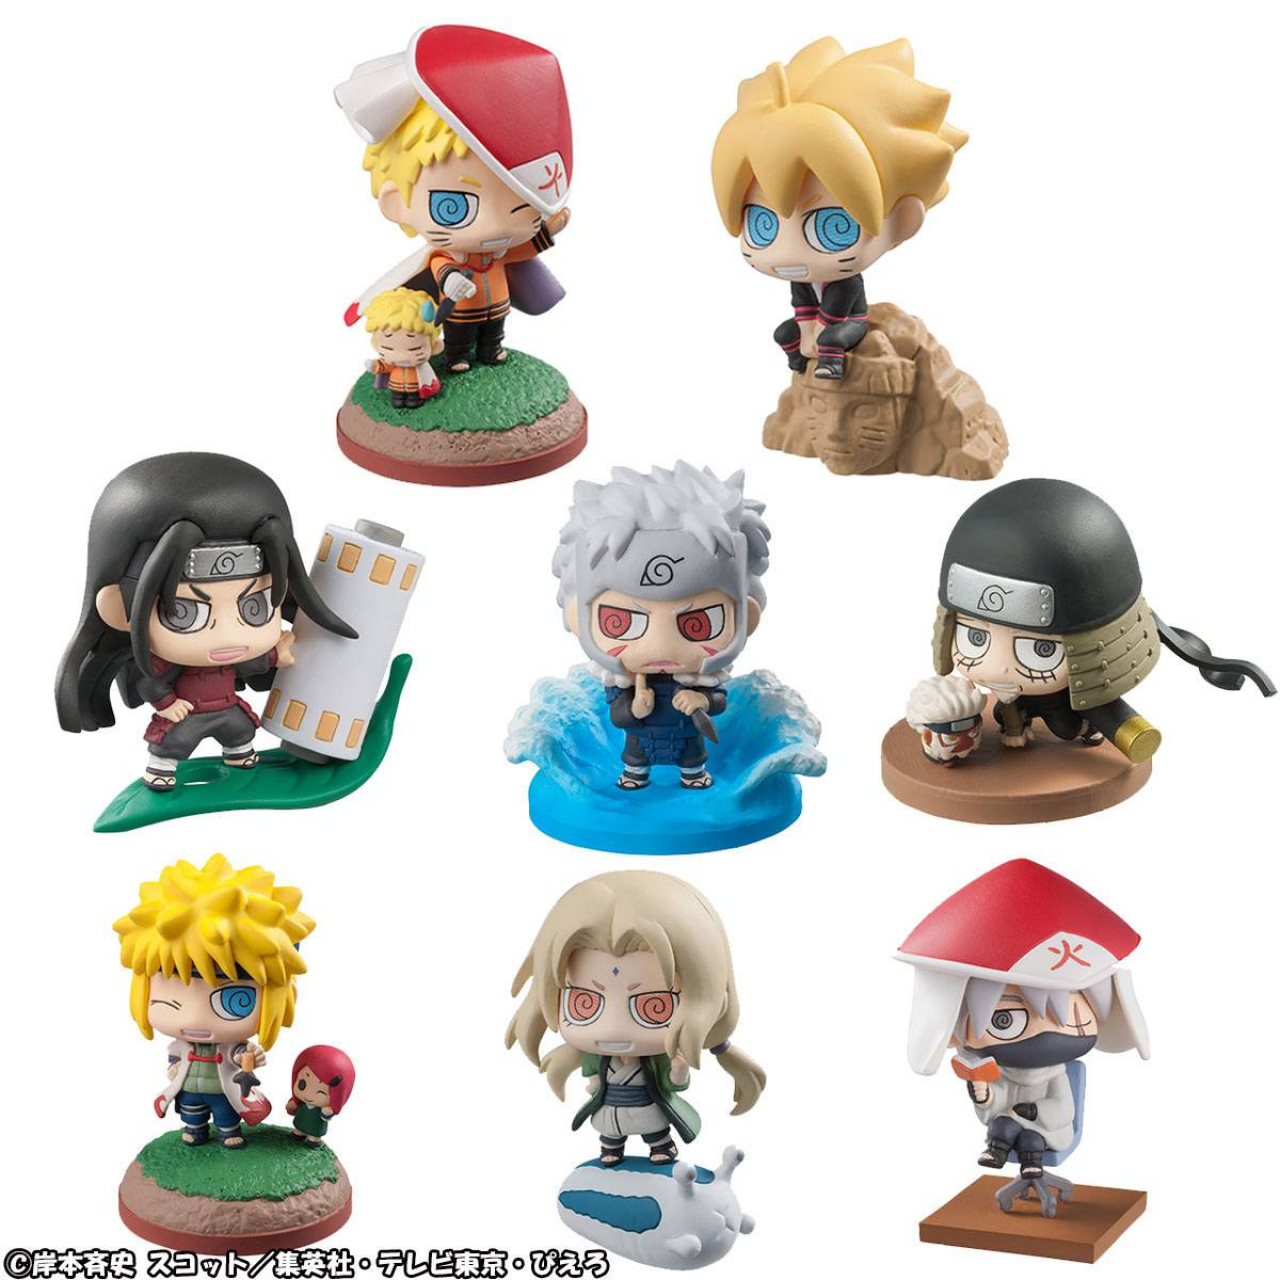 Boruto Naruto Next Generation Petit Chara Land Trading Figure 6 cm Assortment Boruto & Hokage (8)